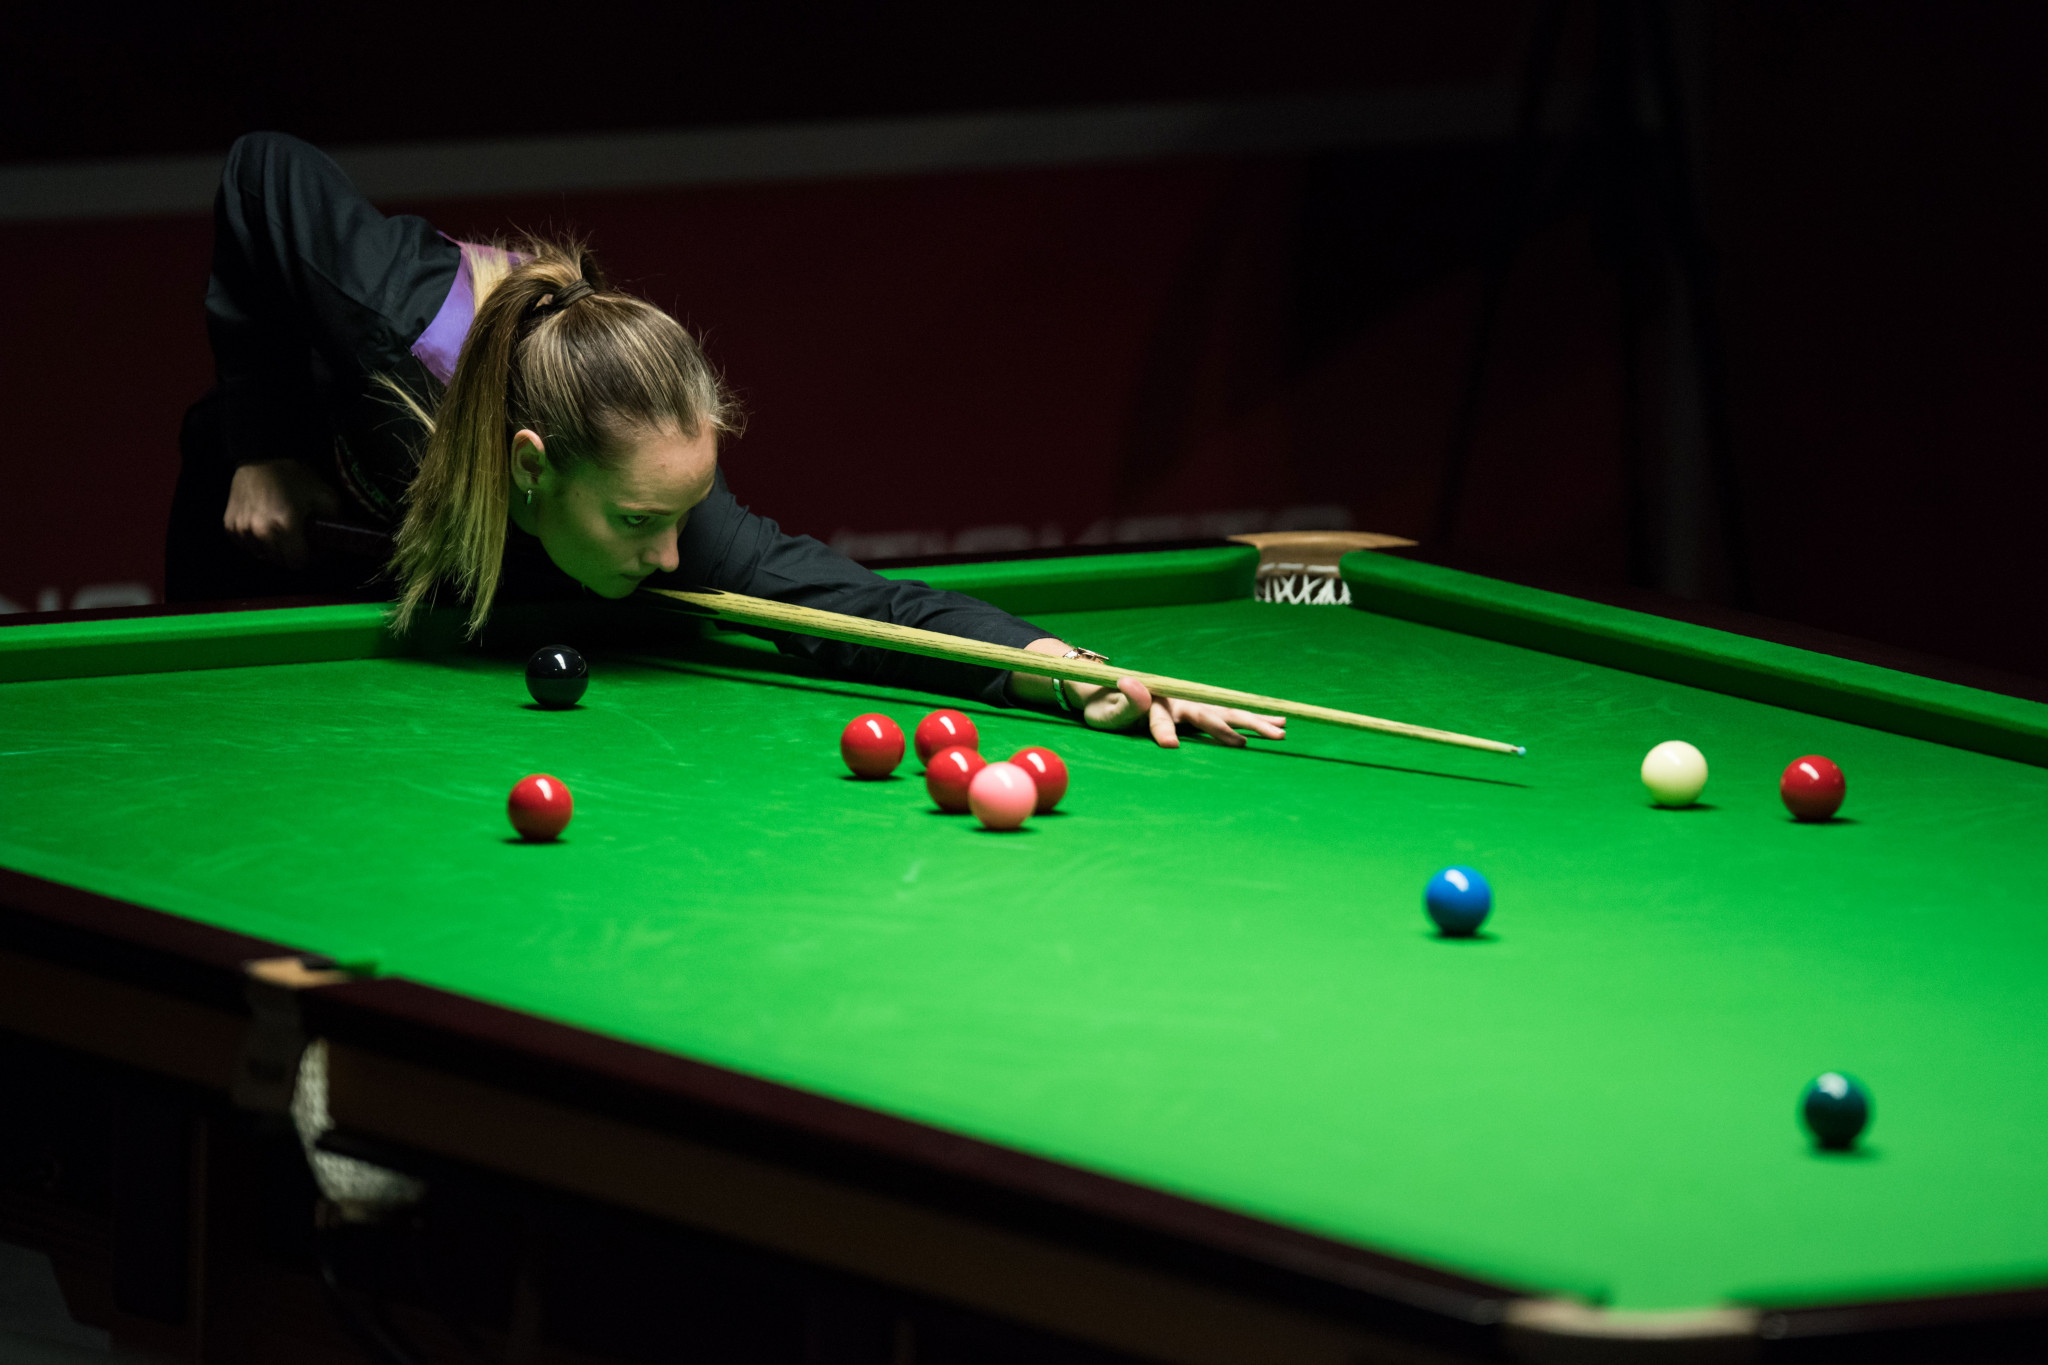 England's Reanne Evans is now involved in group matches in the inaugural WSF World Championships in Malta ©Getty Images